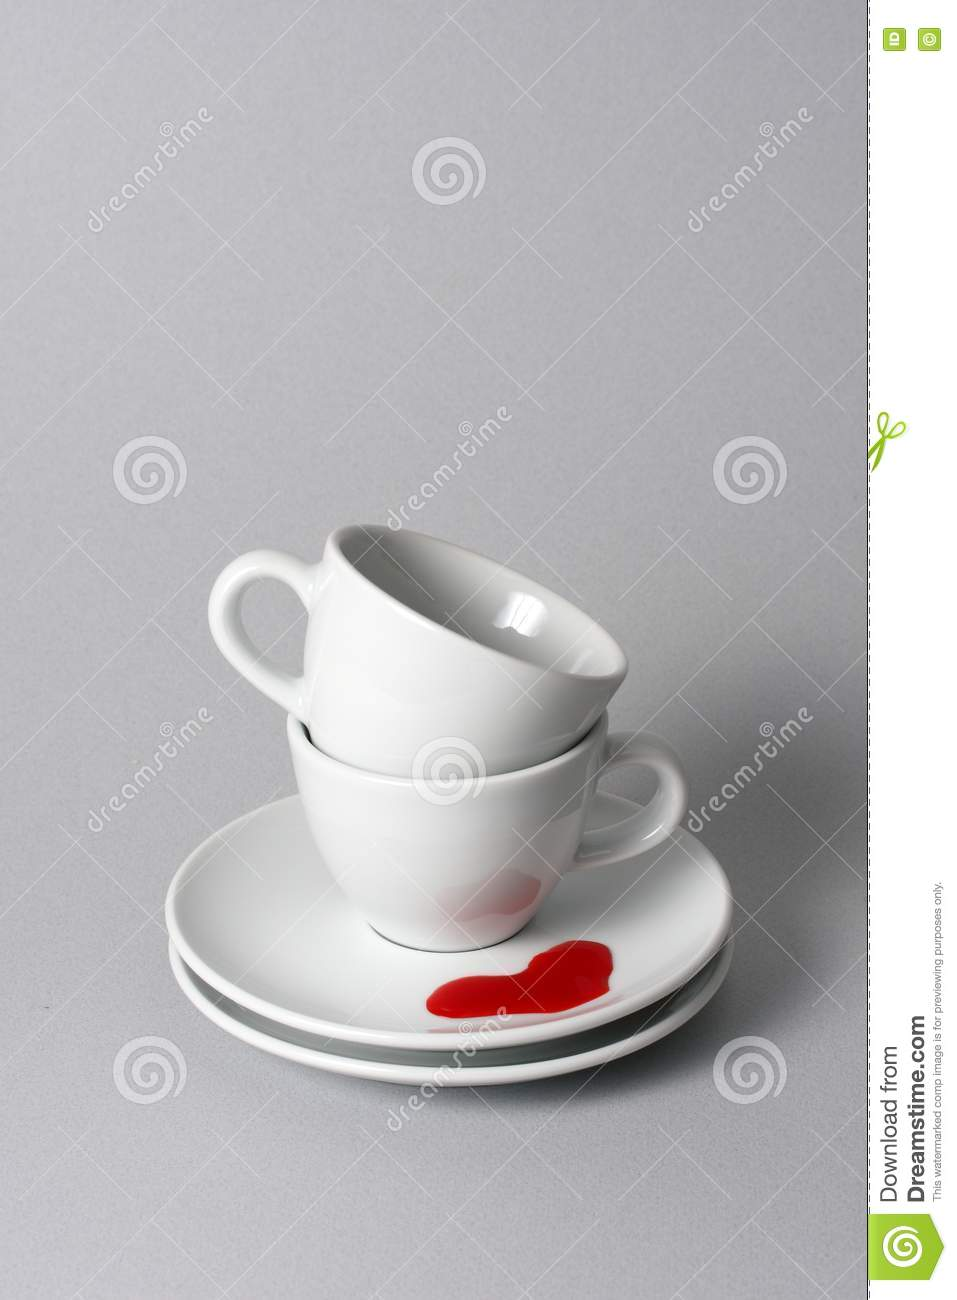 64 best Tea Party Free Images and Printables images on